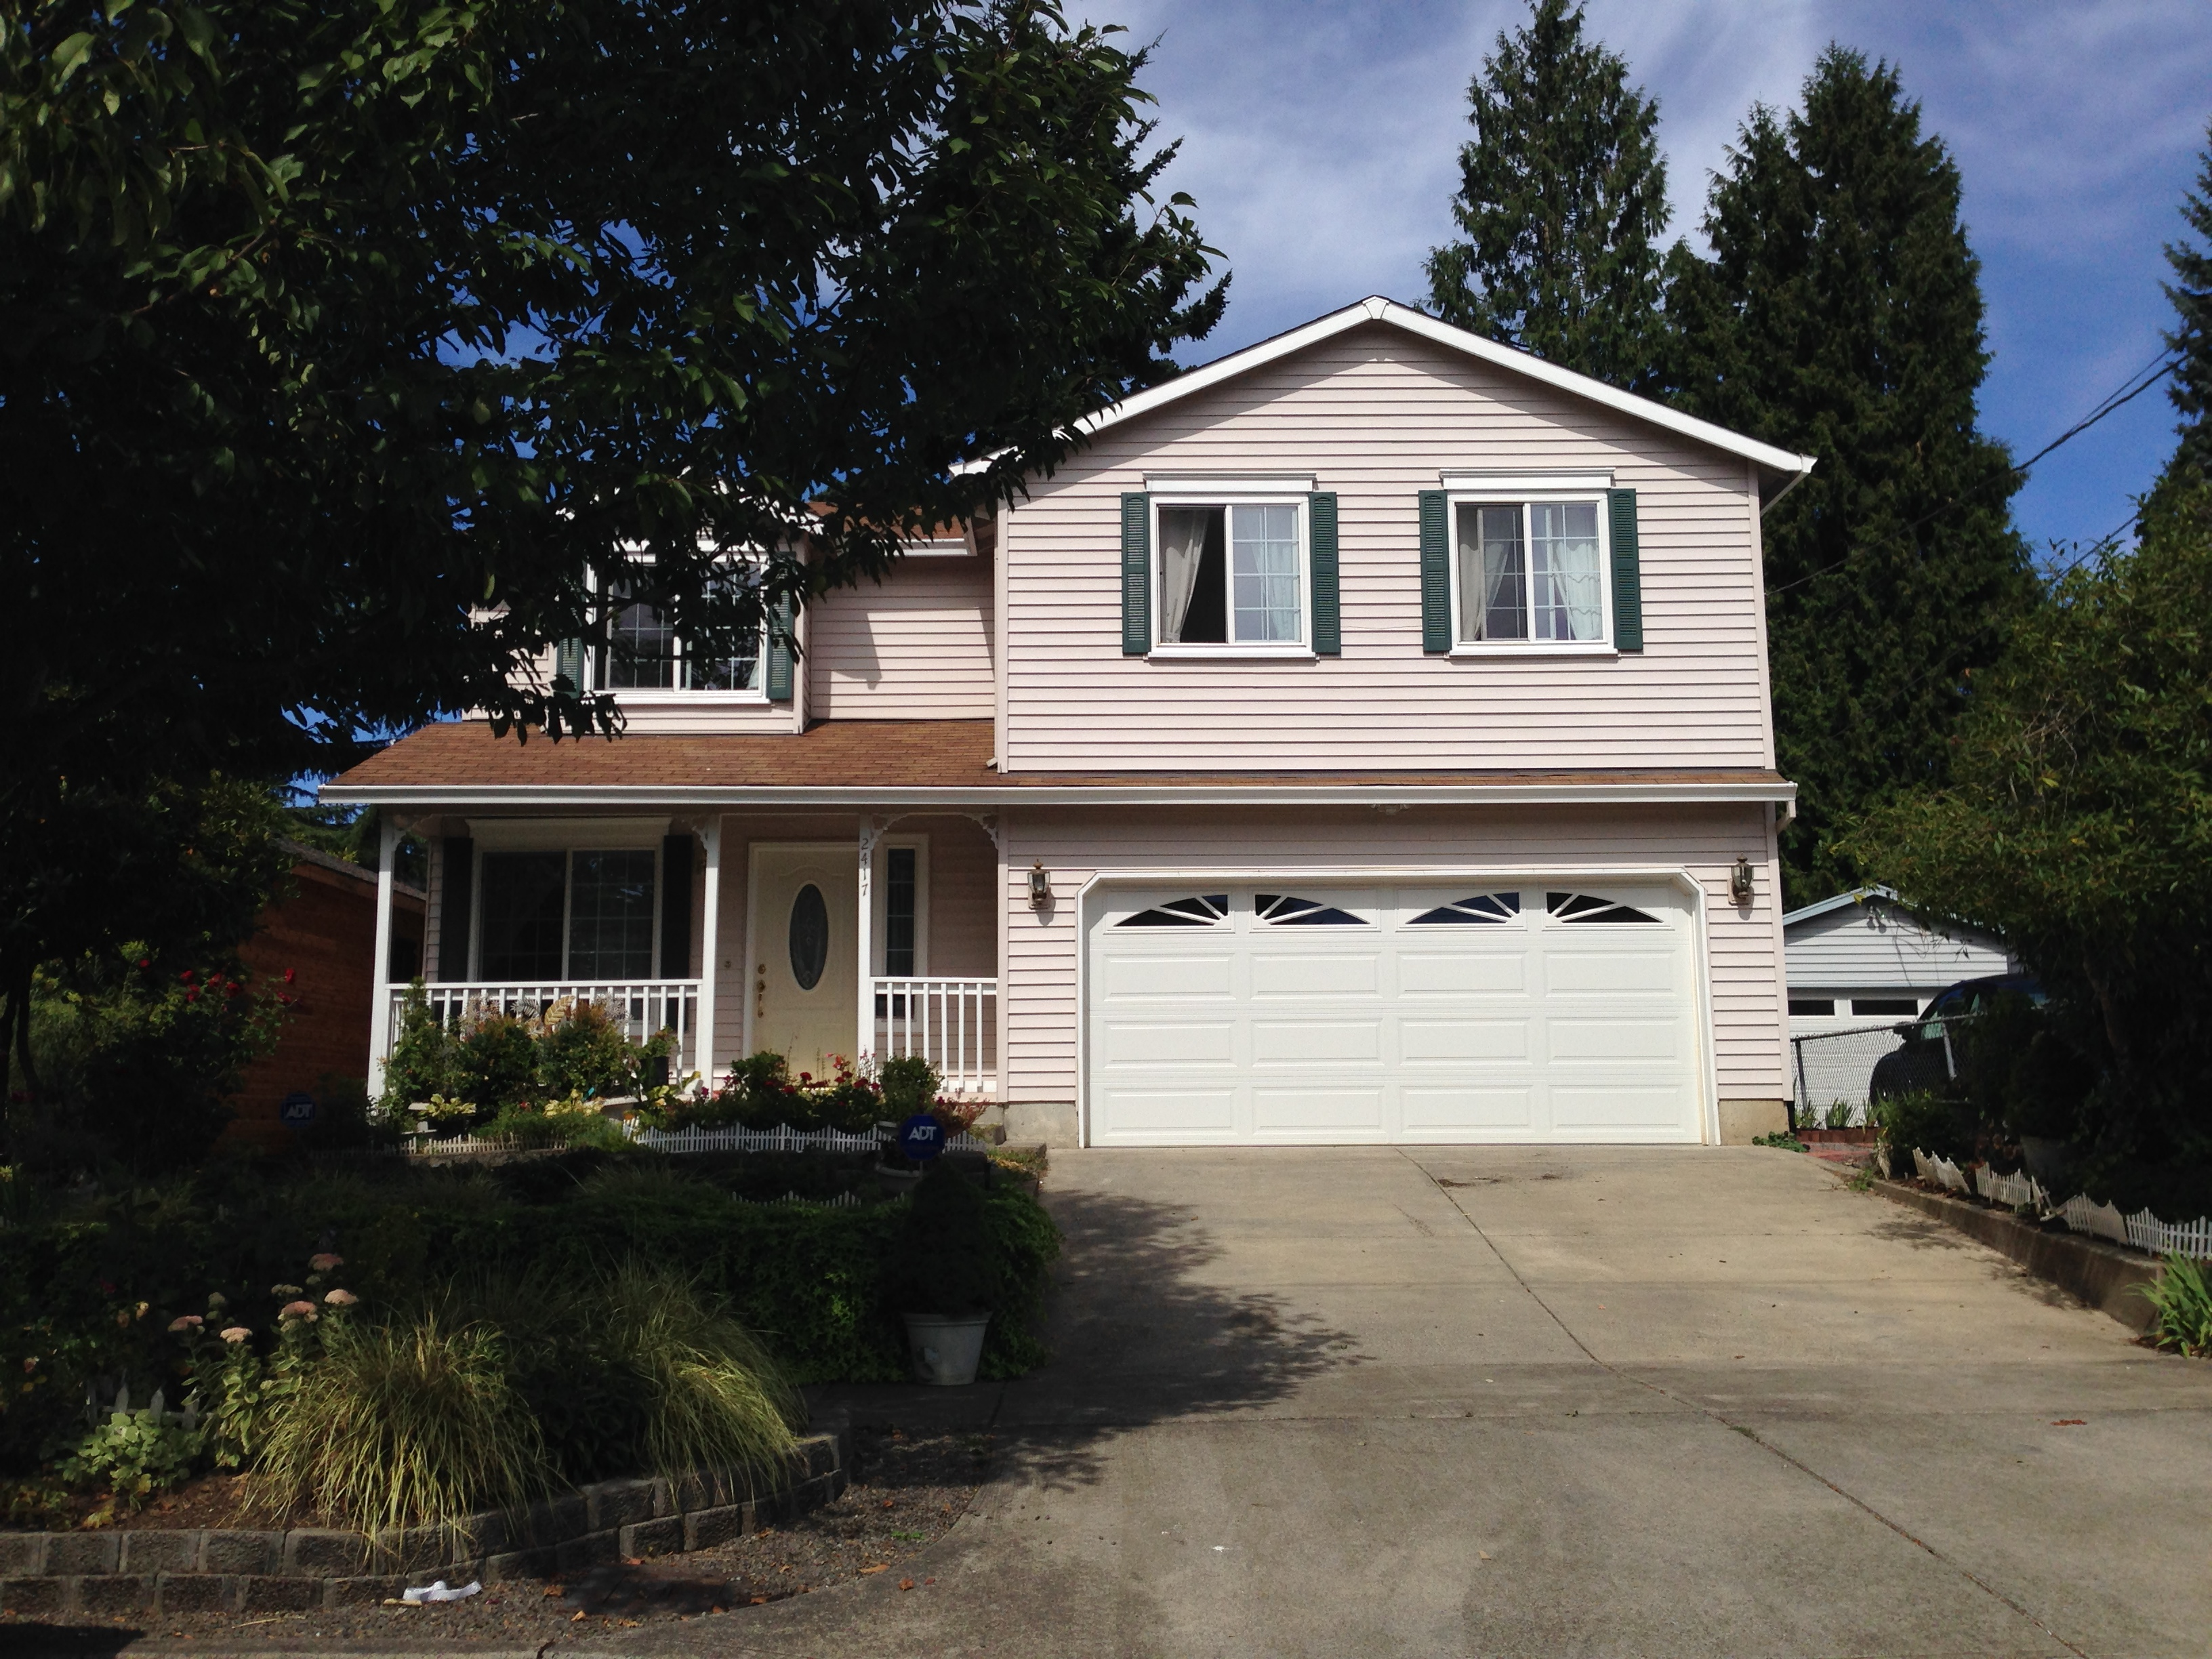 SOLD 2417 N Humboldt St, Portland, OR